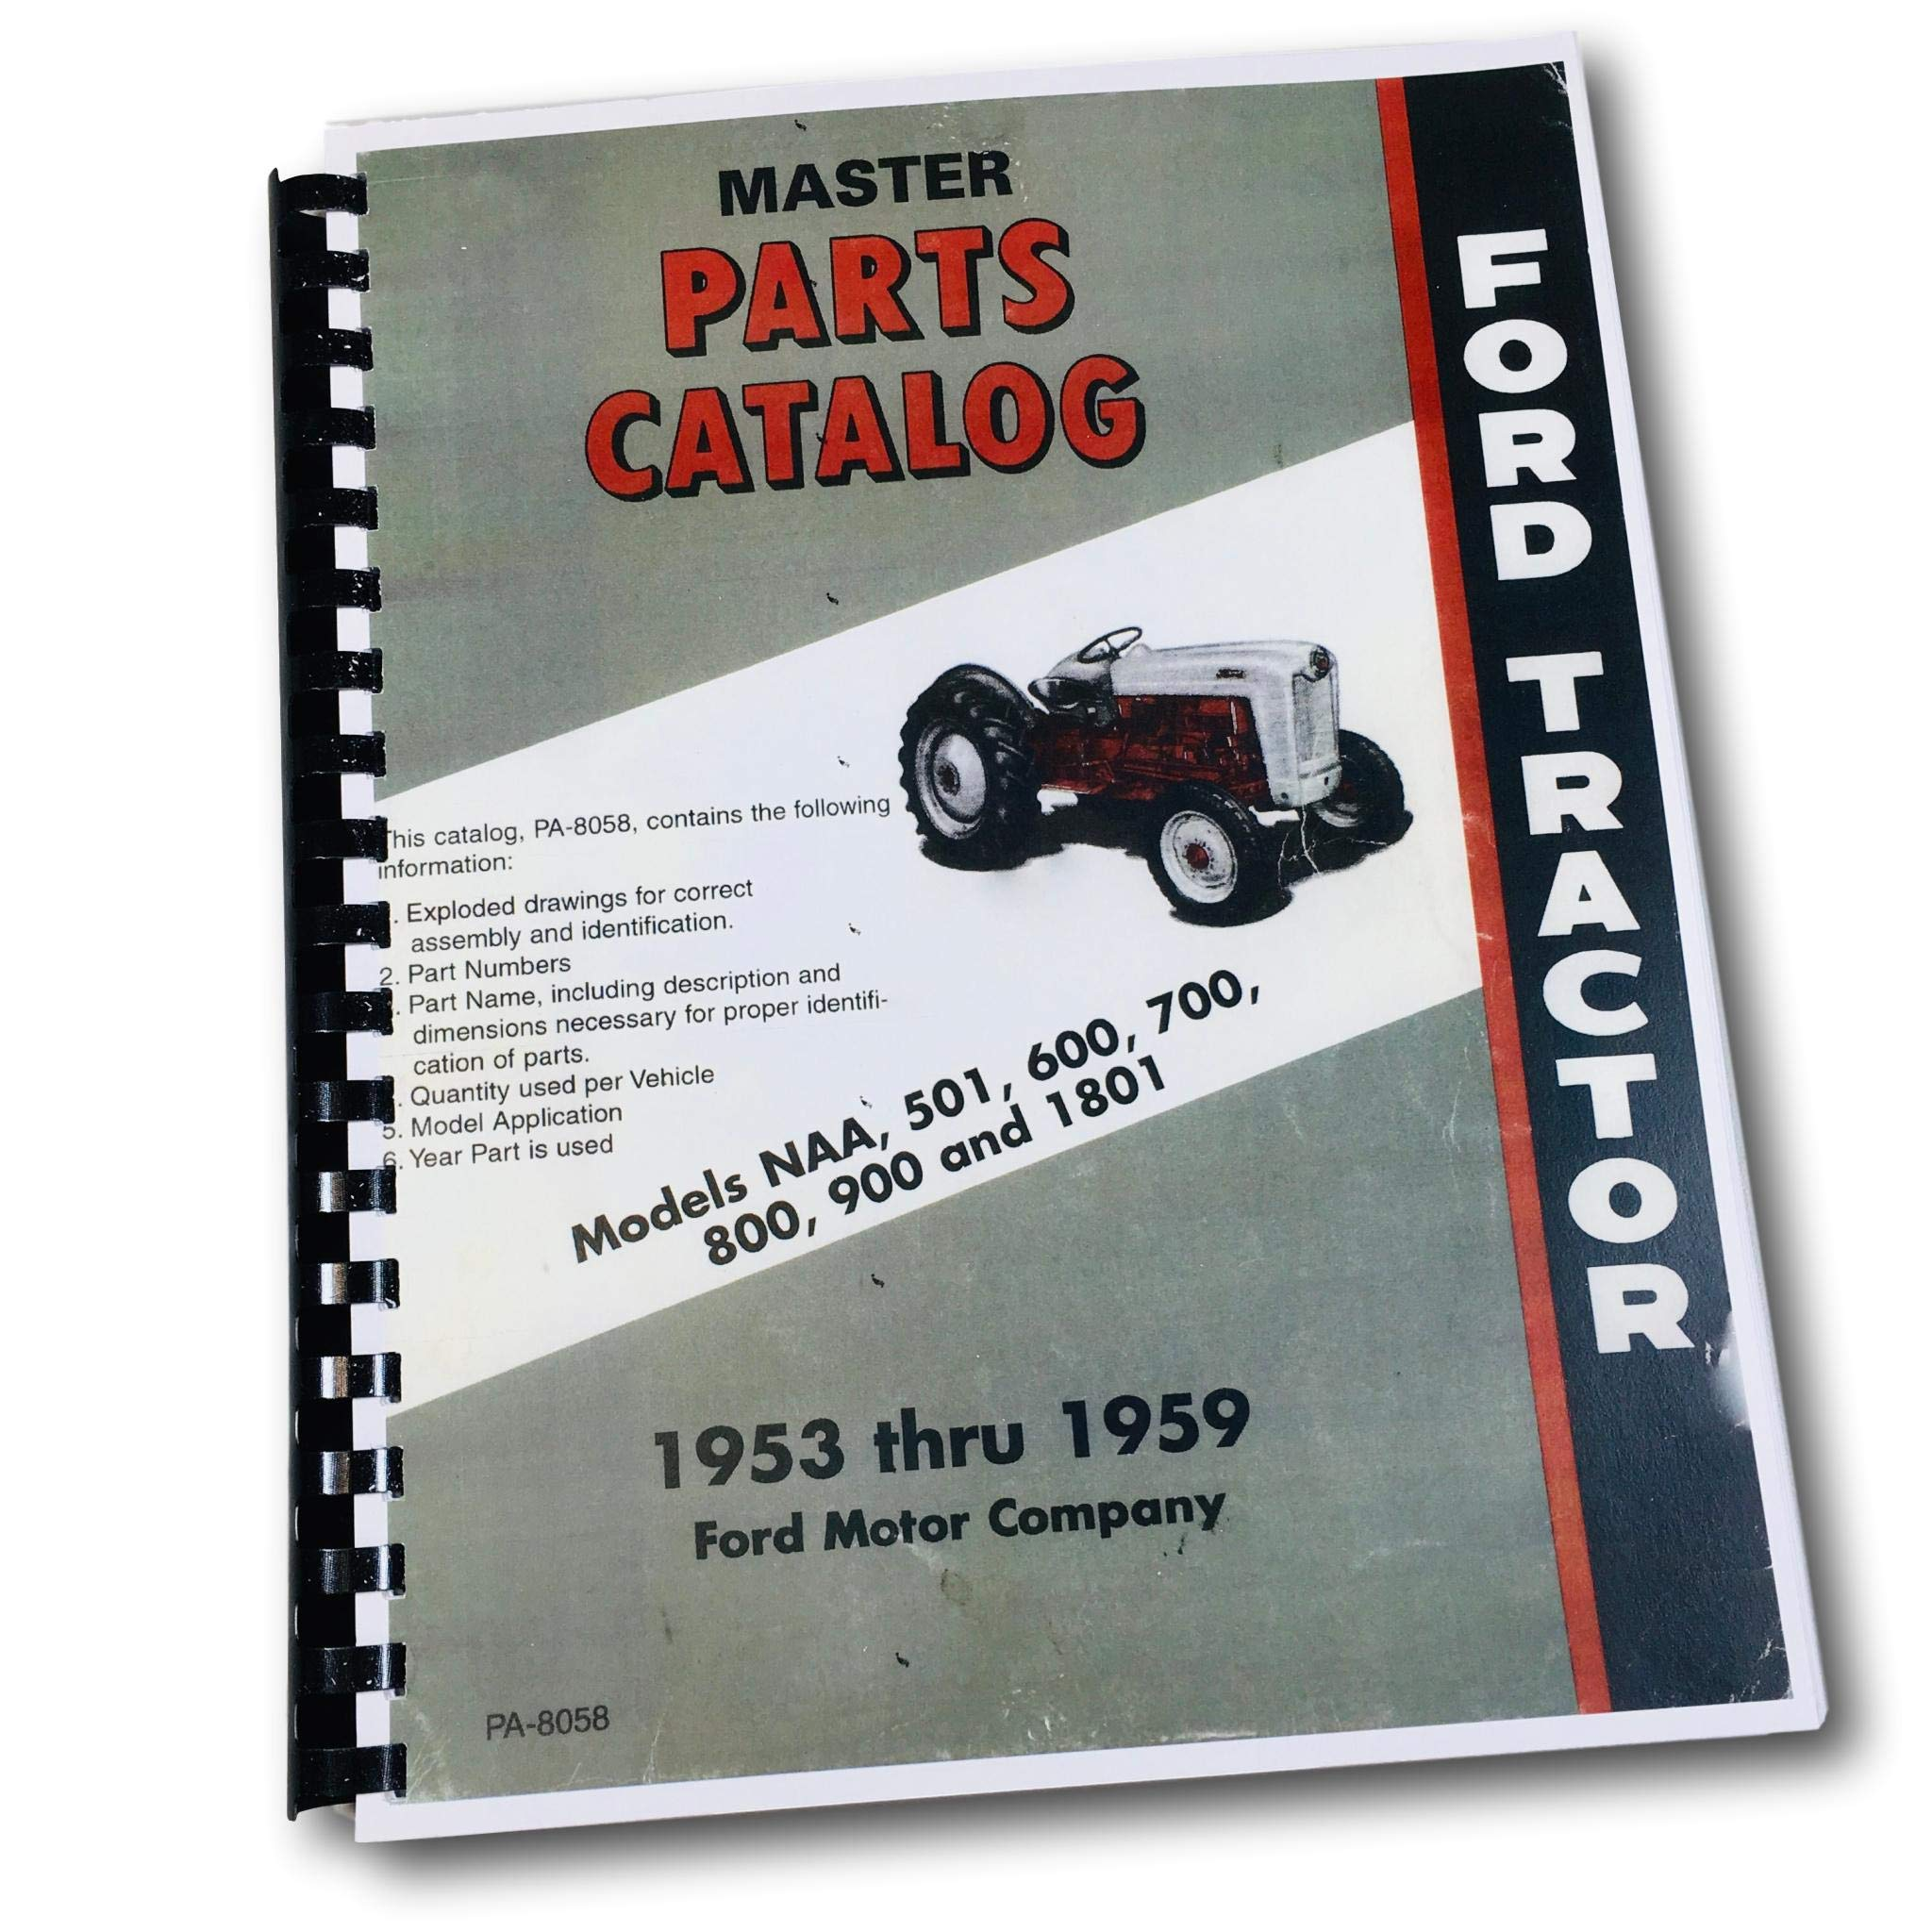 FORD 501 600 700 800 900 1800 NAA & GOLDEN JUBILEE FARM TRACTOR FACTORY  MASTER PARTS CATALOG - MANUAL - 1953 1954 1955 1956 1957 1958 1959: FORD  MOTORS ...